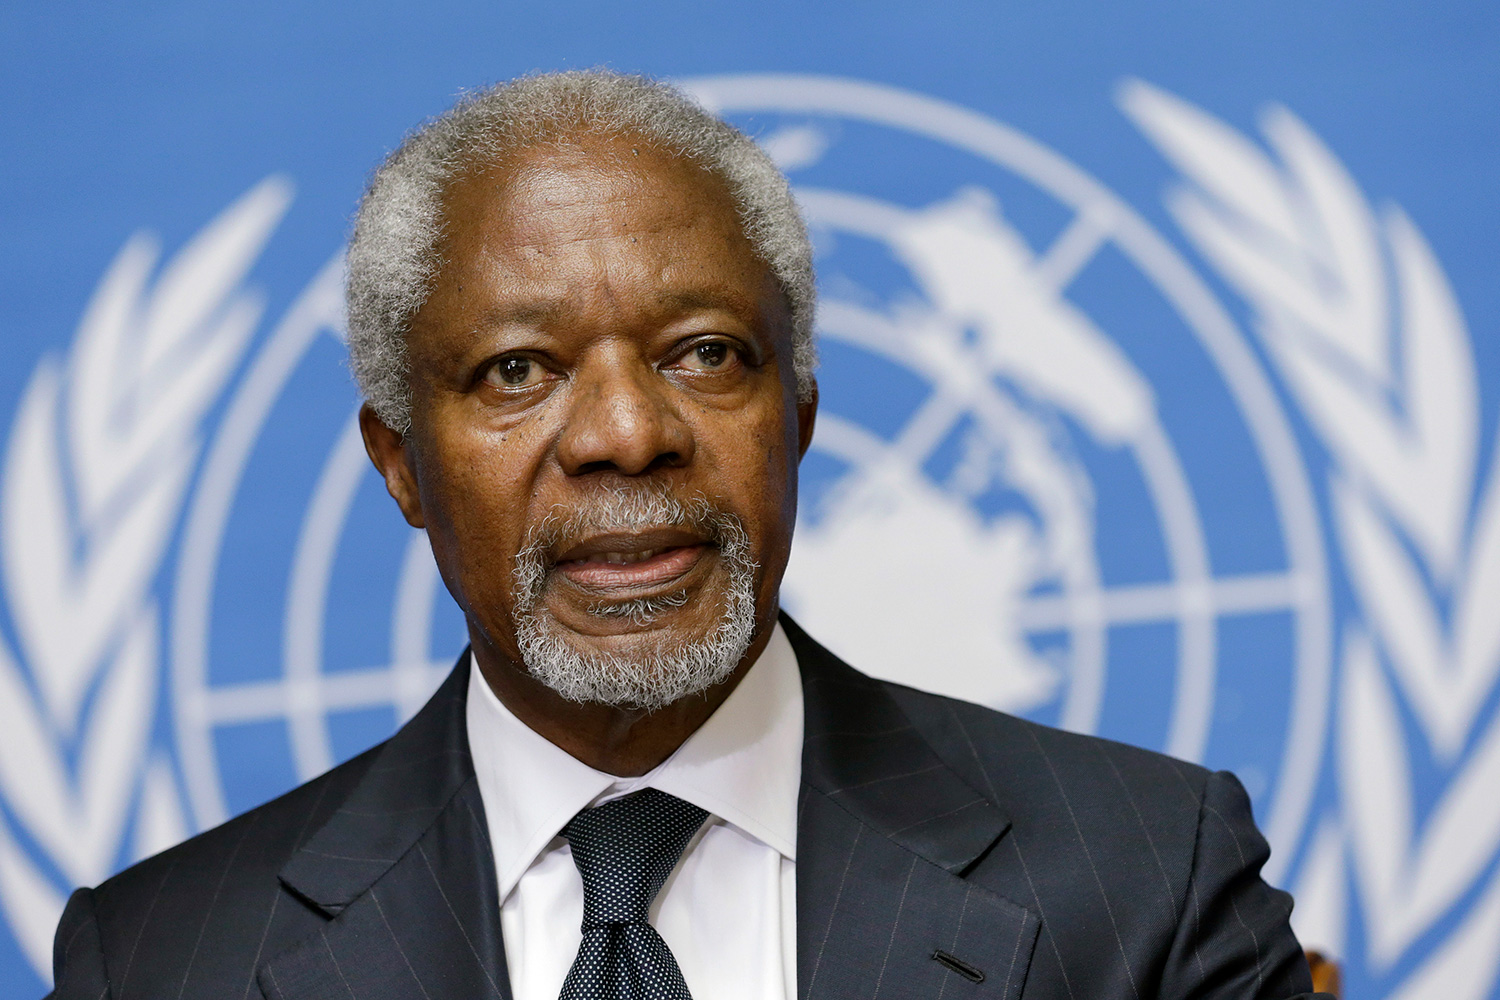 Photo shows a close-up head shot of Annan in front of a blue and white UN banner, which is blurred out in the background.